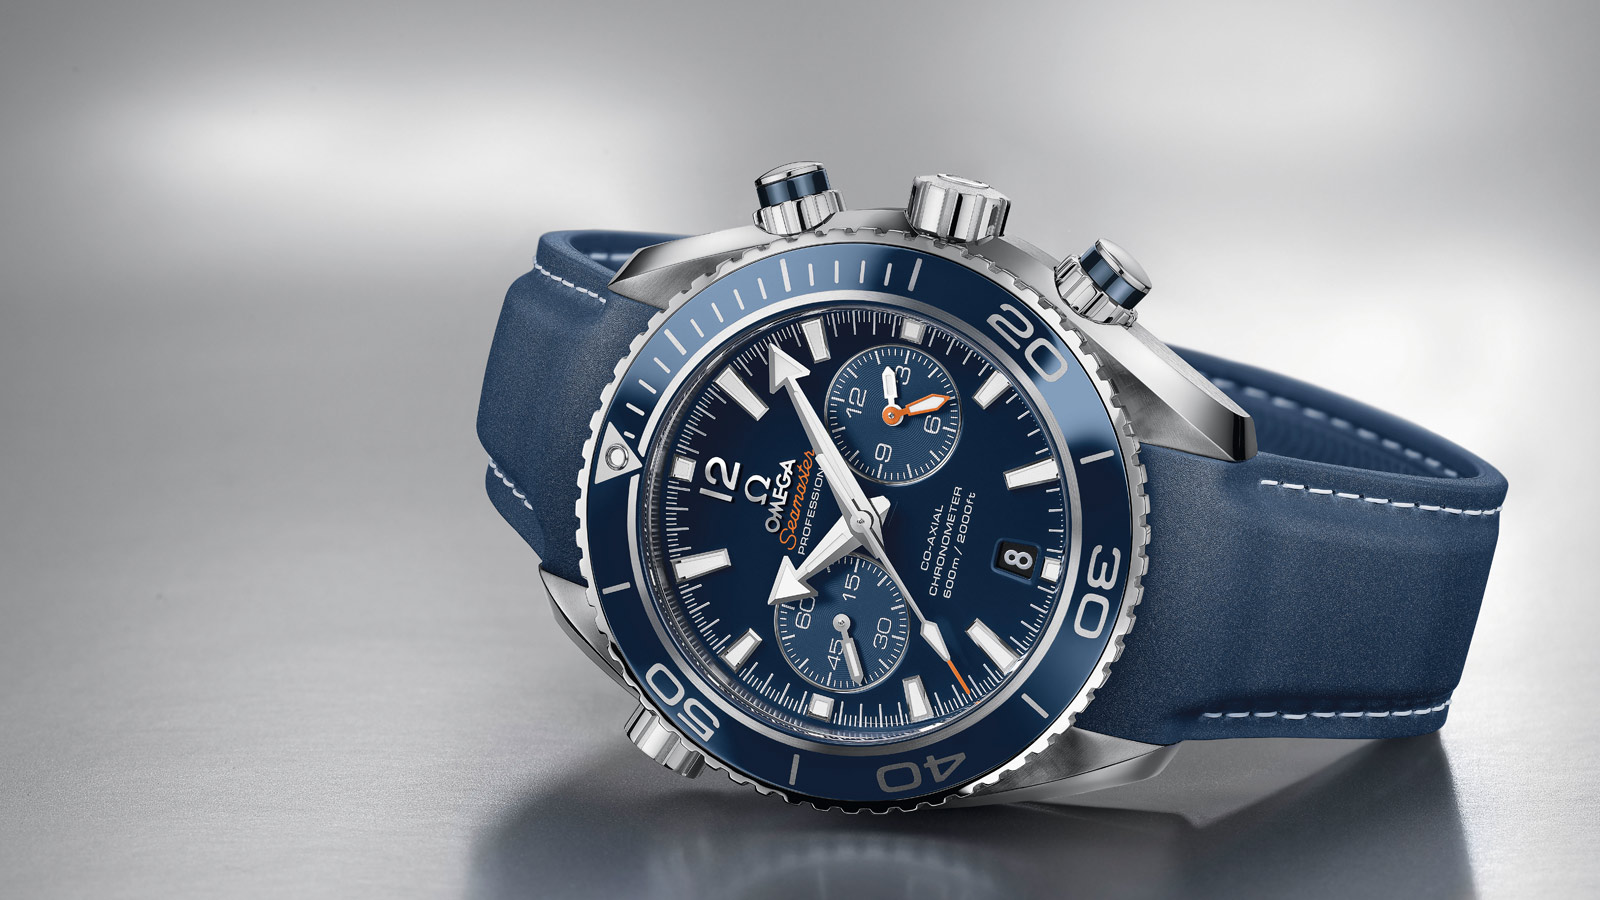 Seamaster Planet Ocean 600M Planet Ocean 600M Chronographe Omega Co‑Axial 45,5 mm - 232.92.46.51.03.001 - Afficher 1